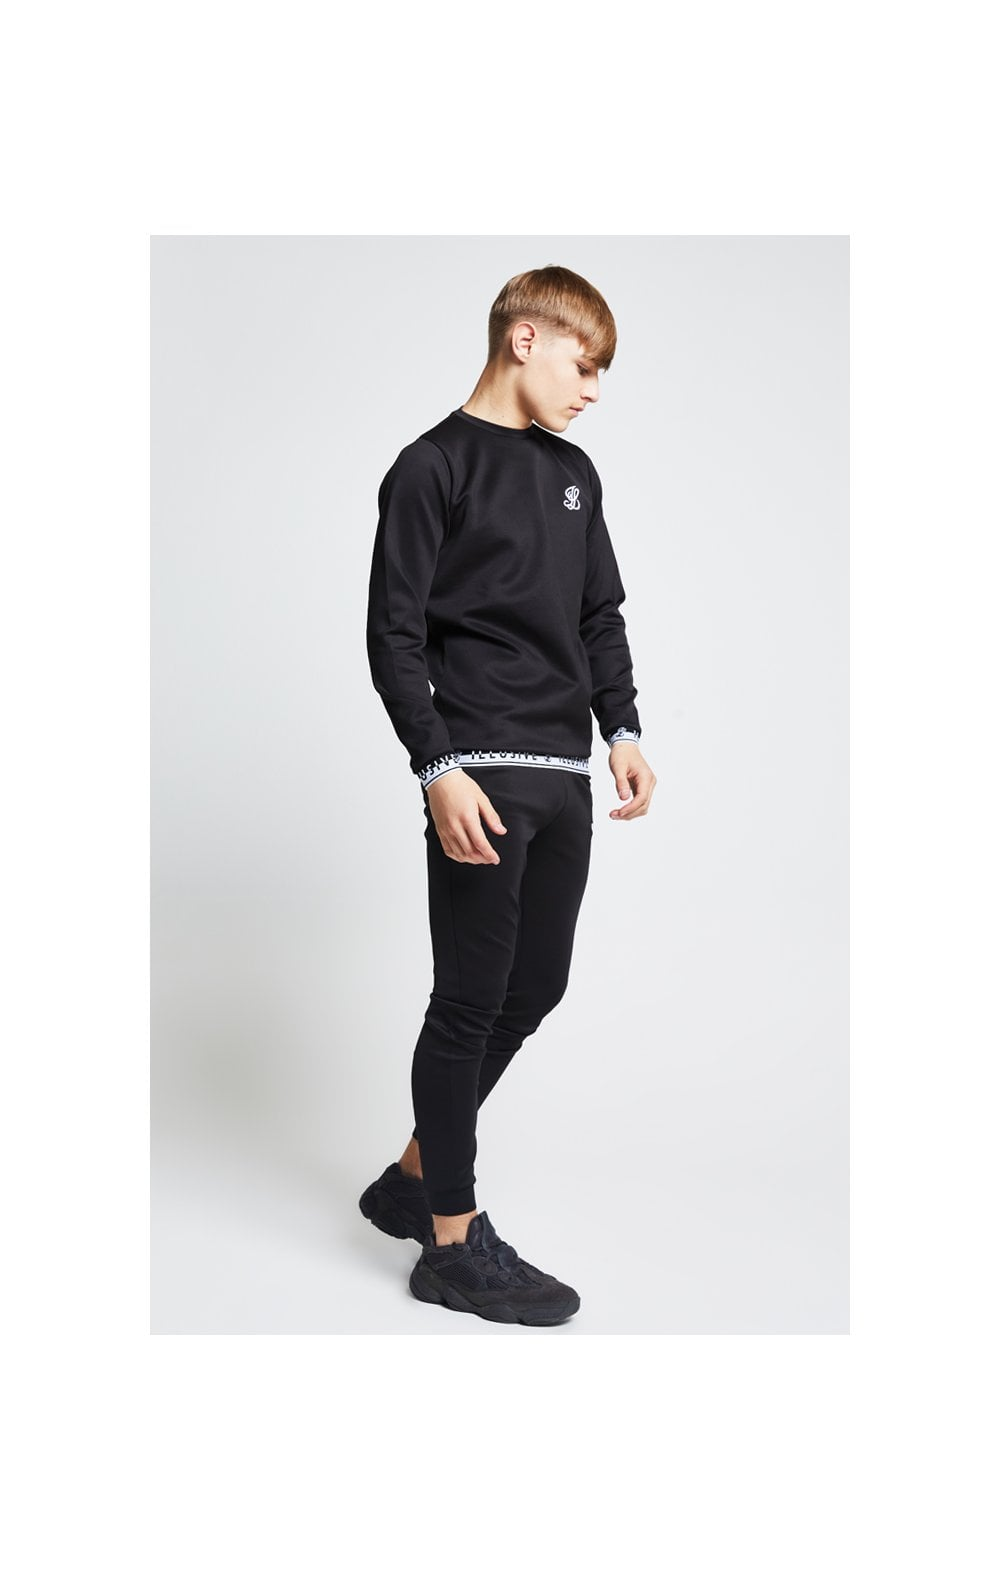 Illusive London Taped Crew Sweater - Black (3)